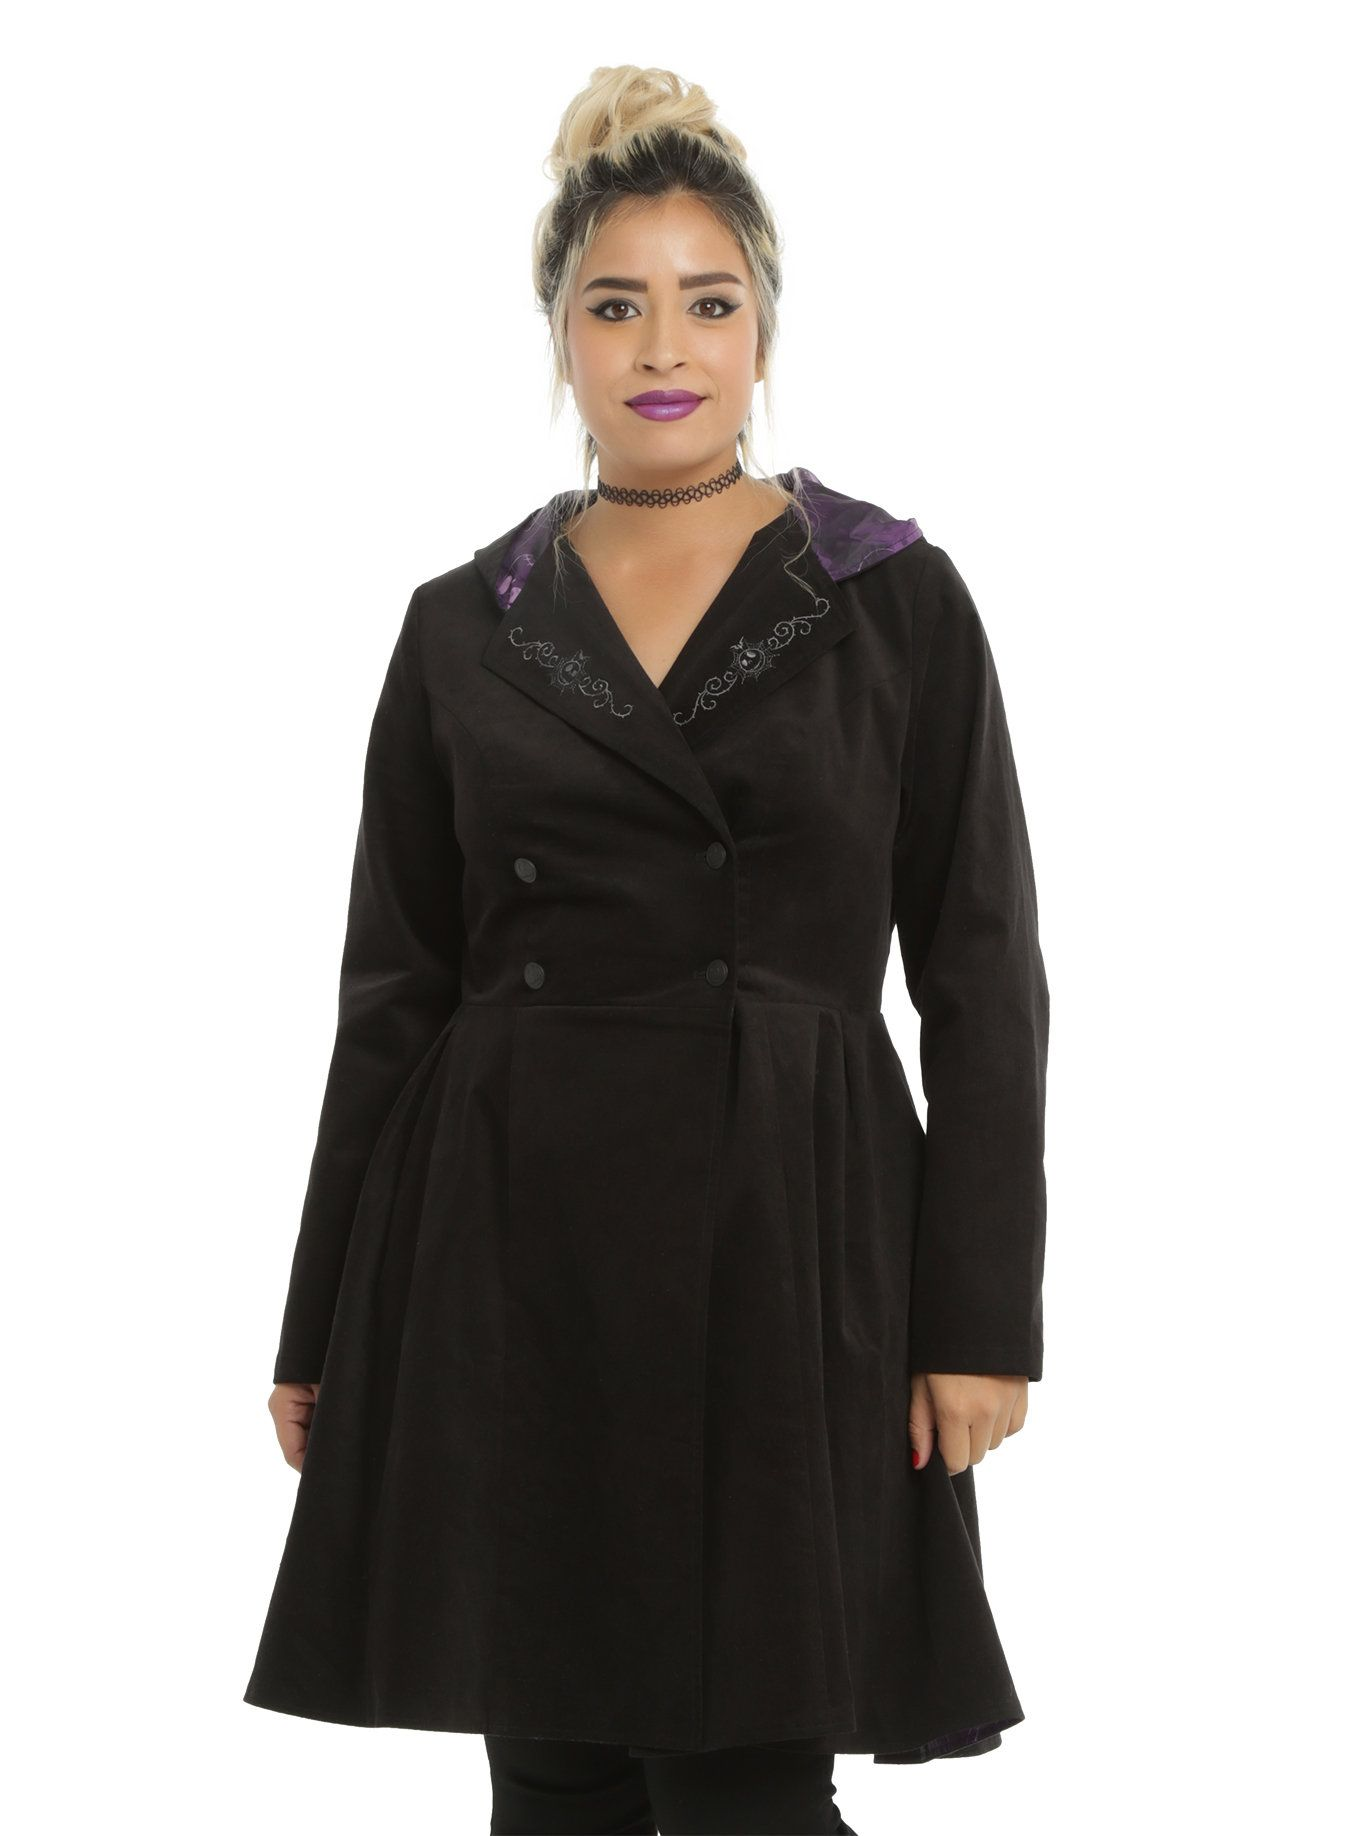 The Nightmare Before Christmas Girls Trench Coat Plus Size | Girls ...